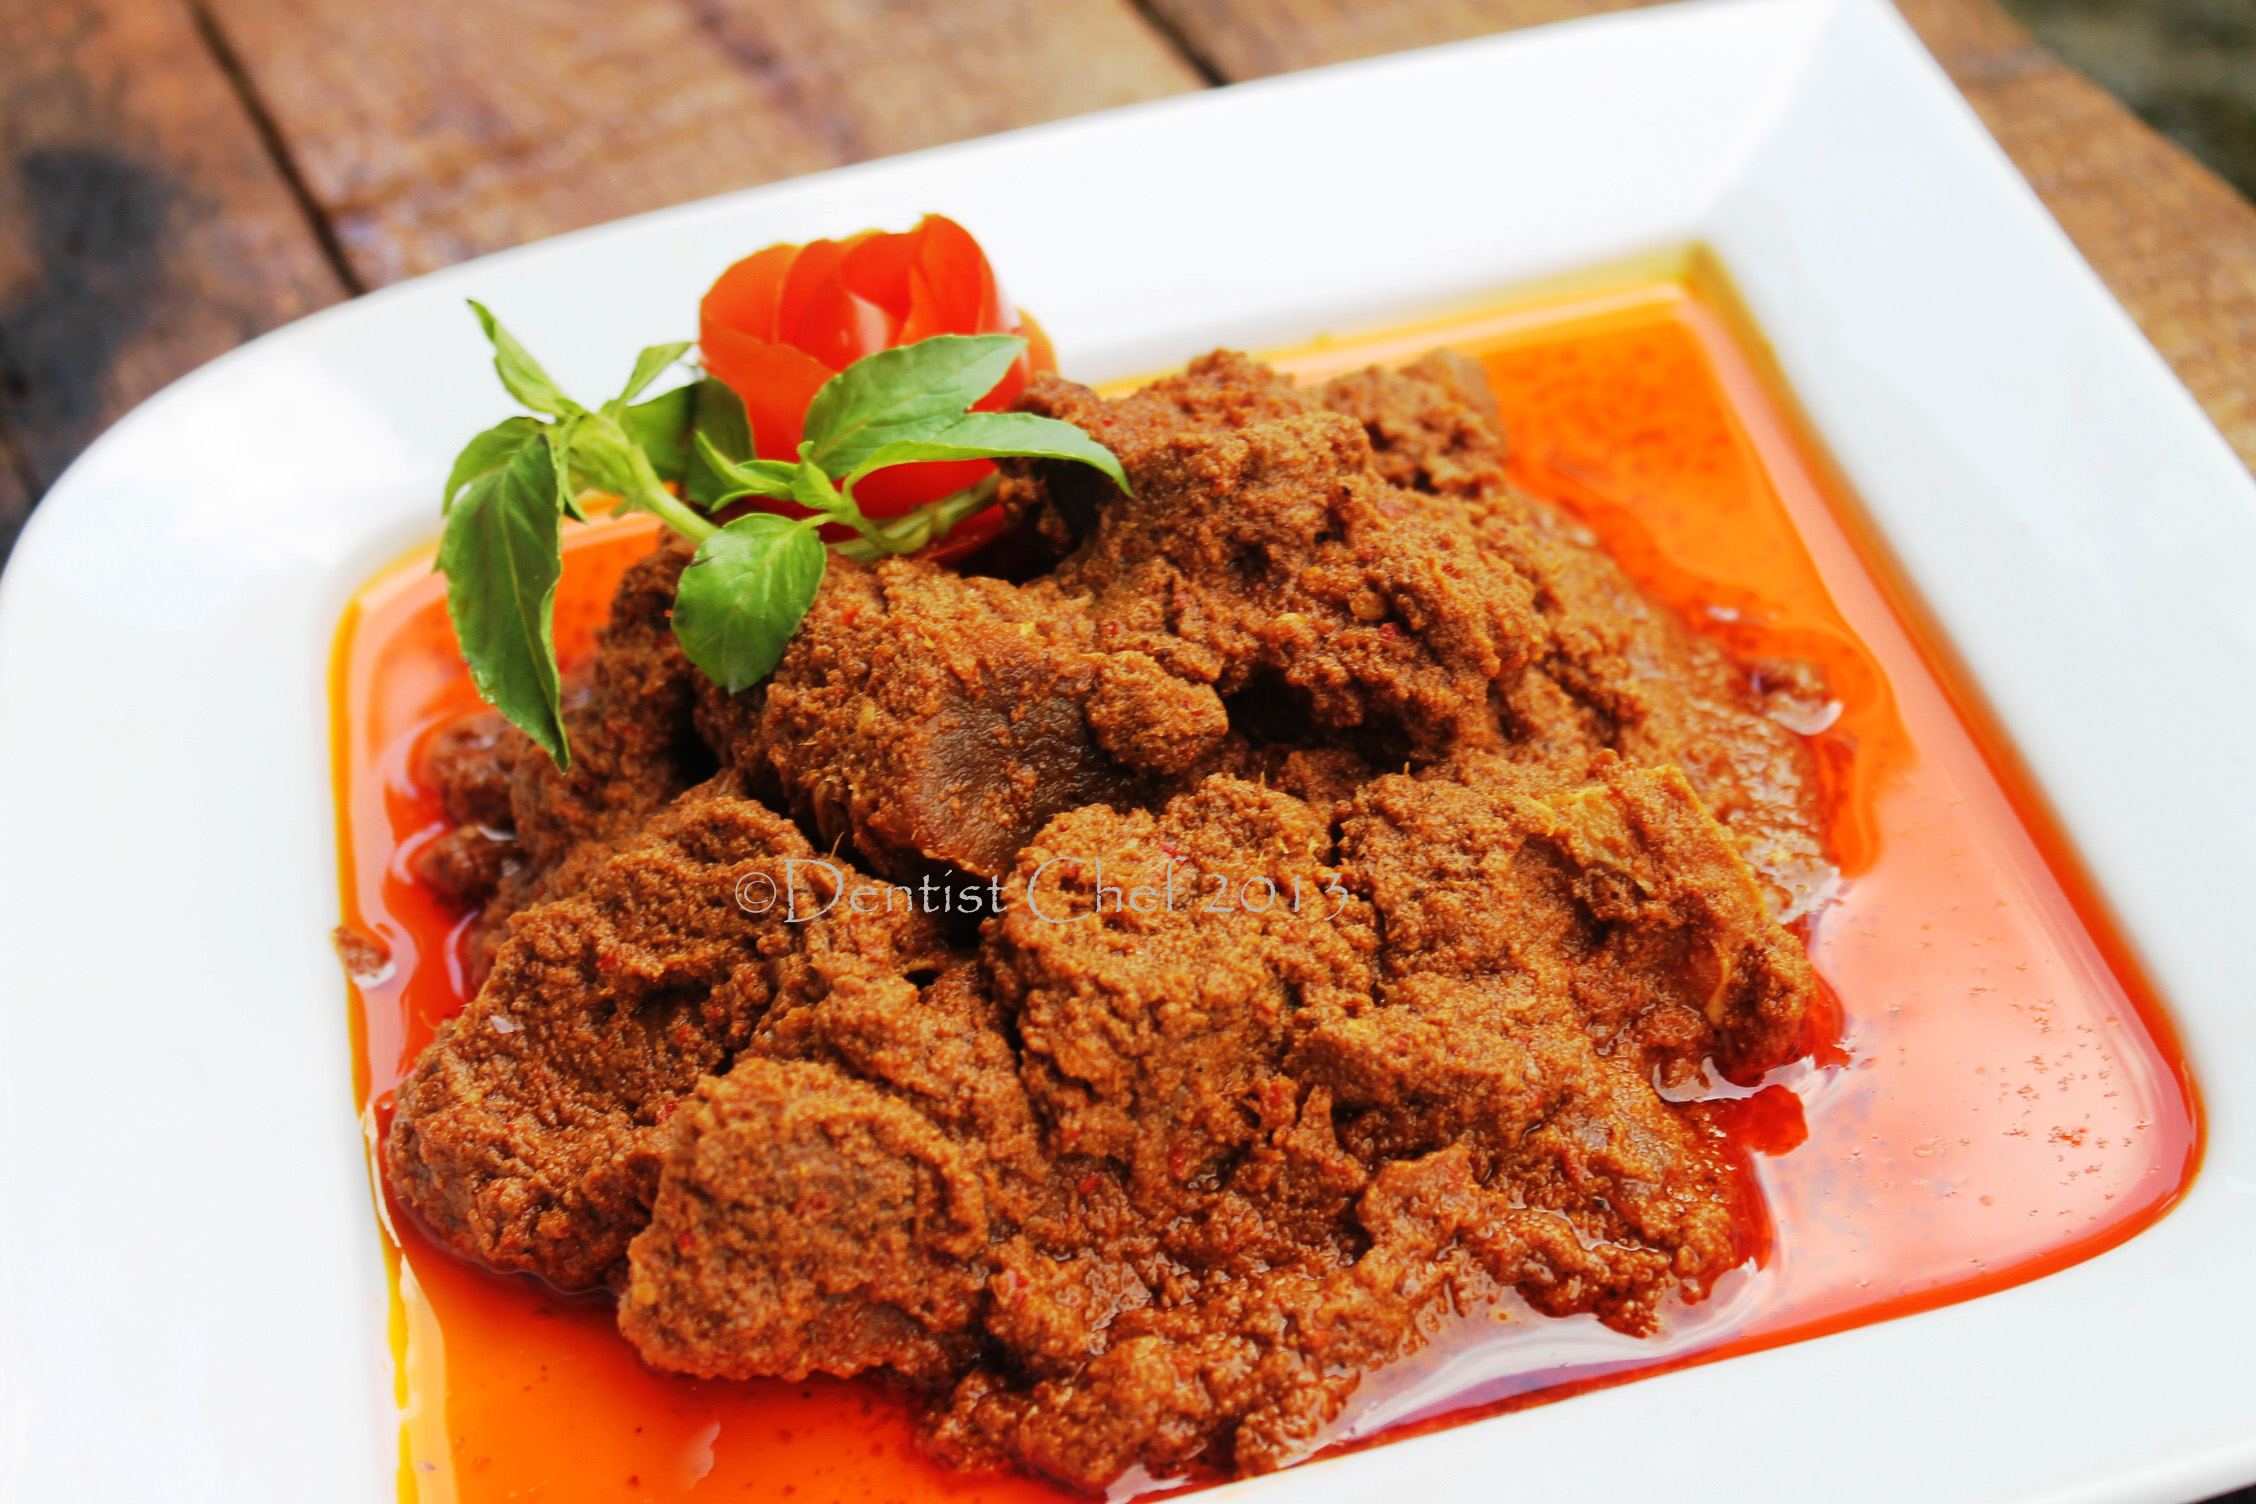 Resep Kalio (Indonesian Brown Rendang or Stewed Beef in Spicy Coconut